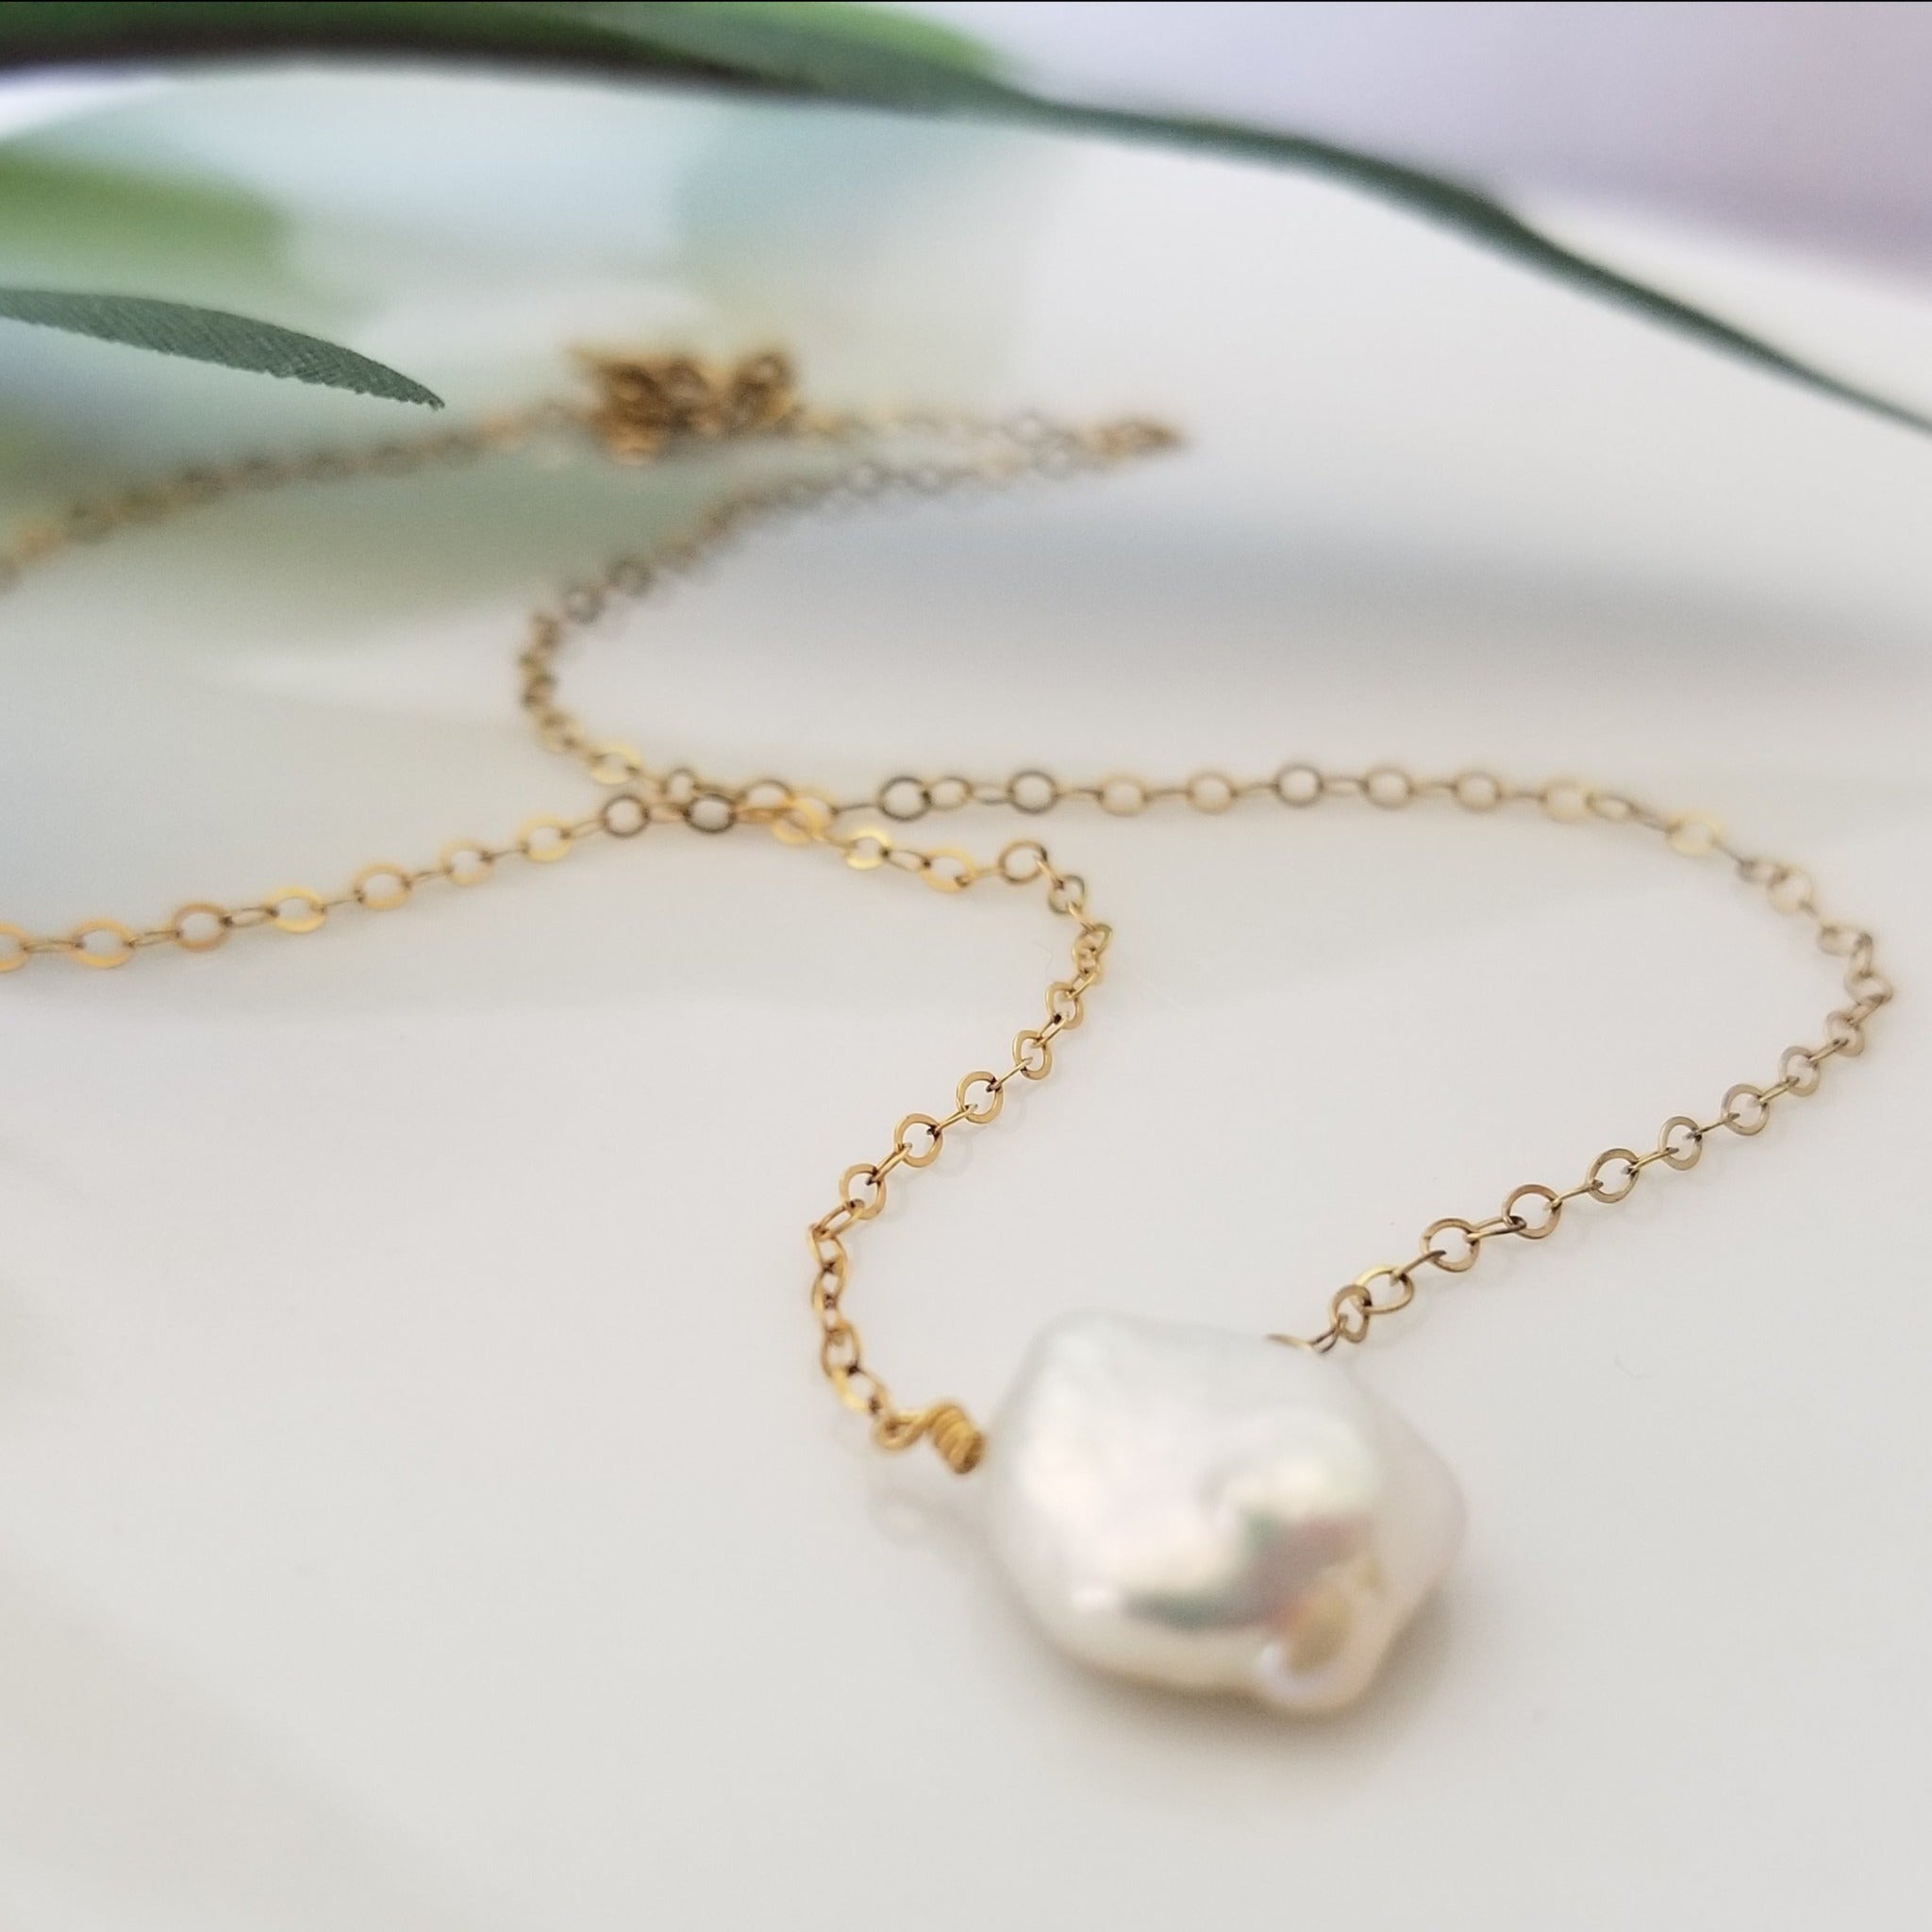 Raw Freshwater Pearl Necklace - Sterling or Gold